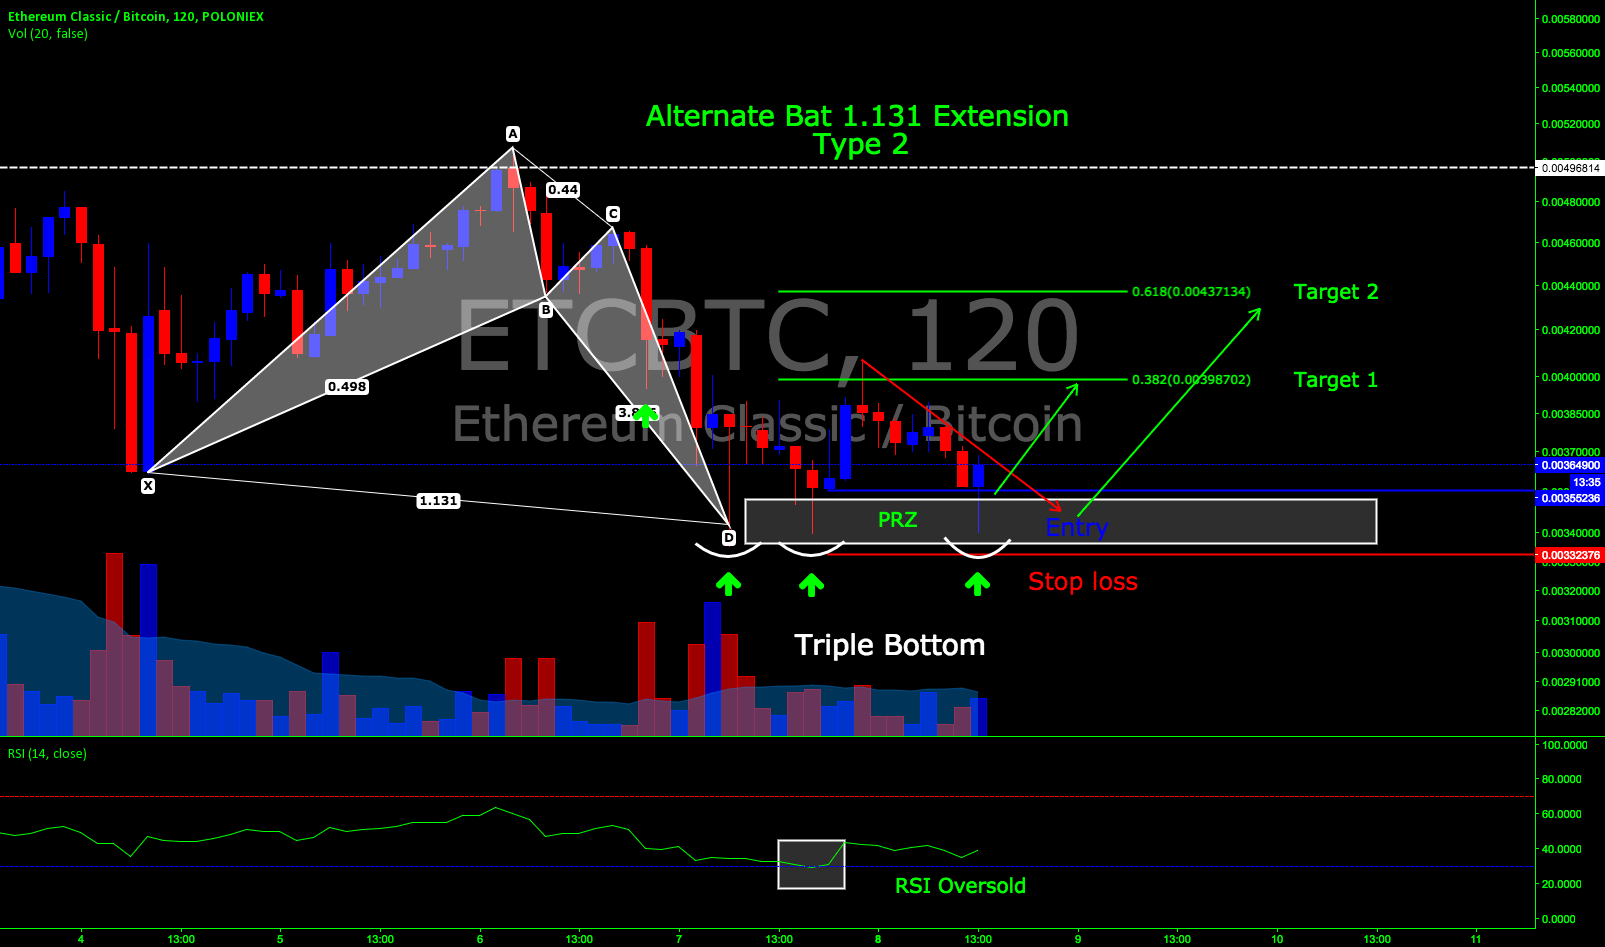 Bullish Alternate Bat: ETC/BTC pair/120 minute time frame